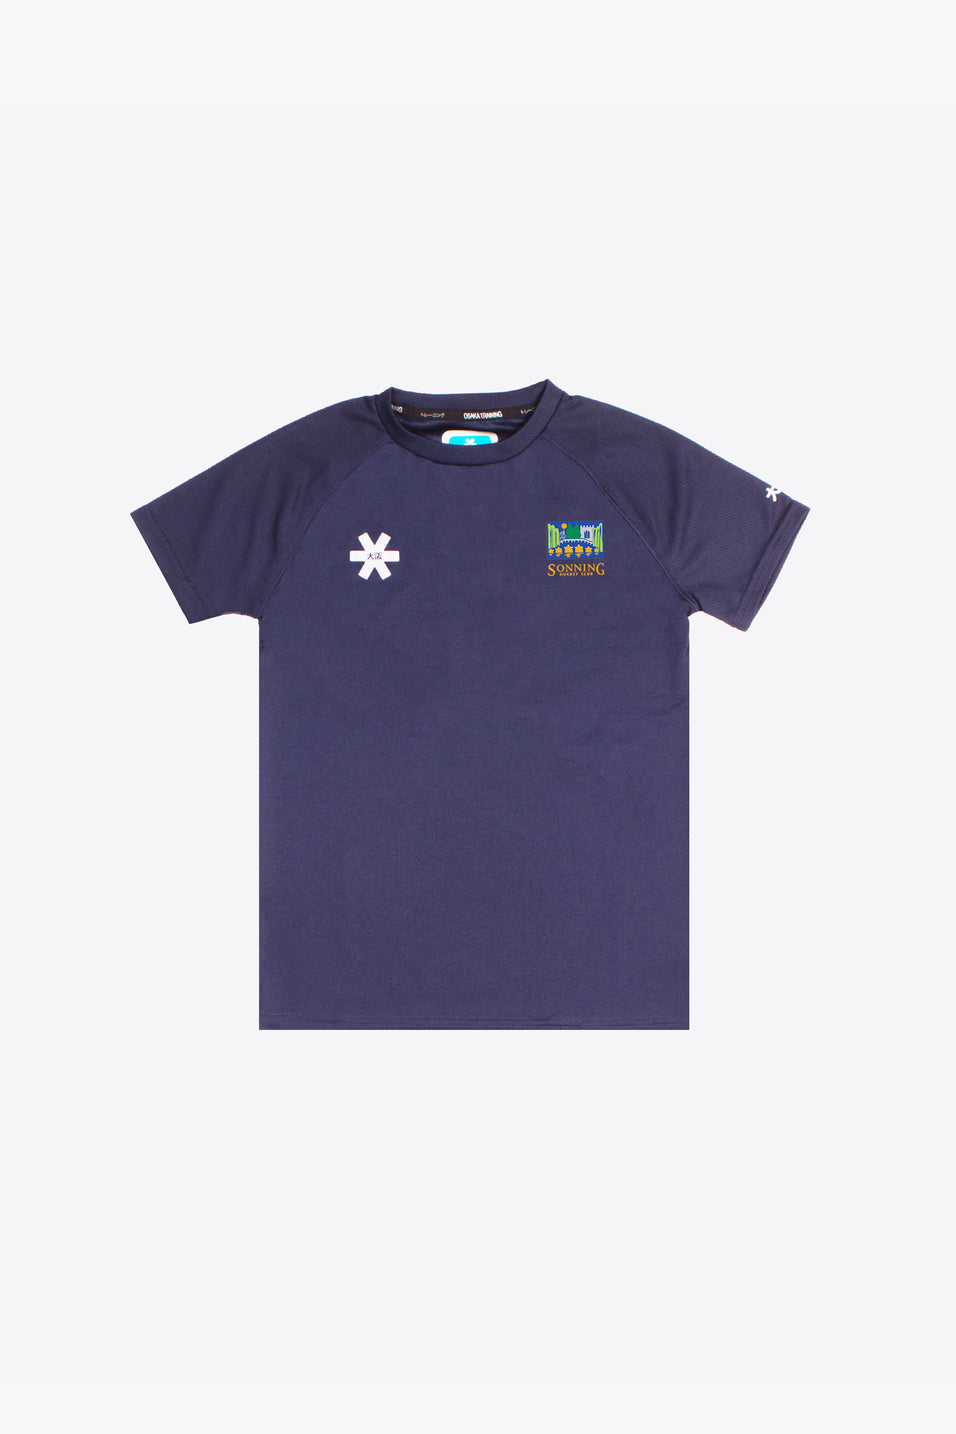 HC Sonning Deshi Training Tee - Navy